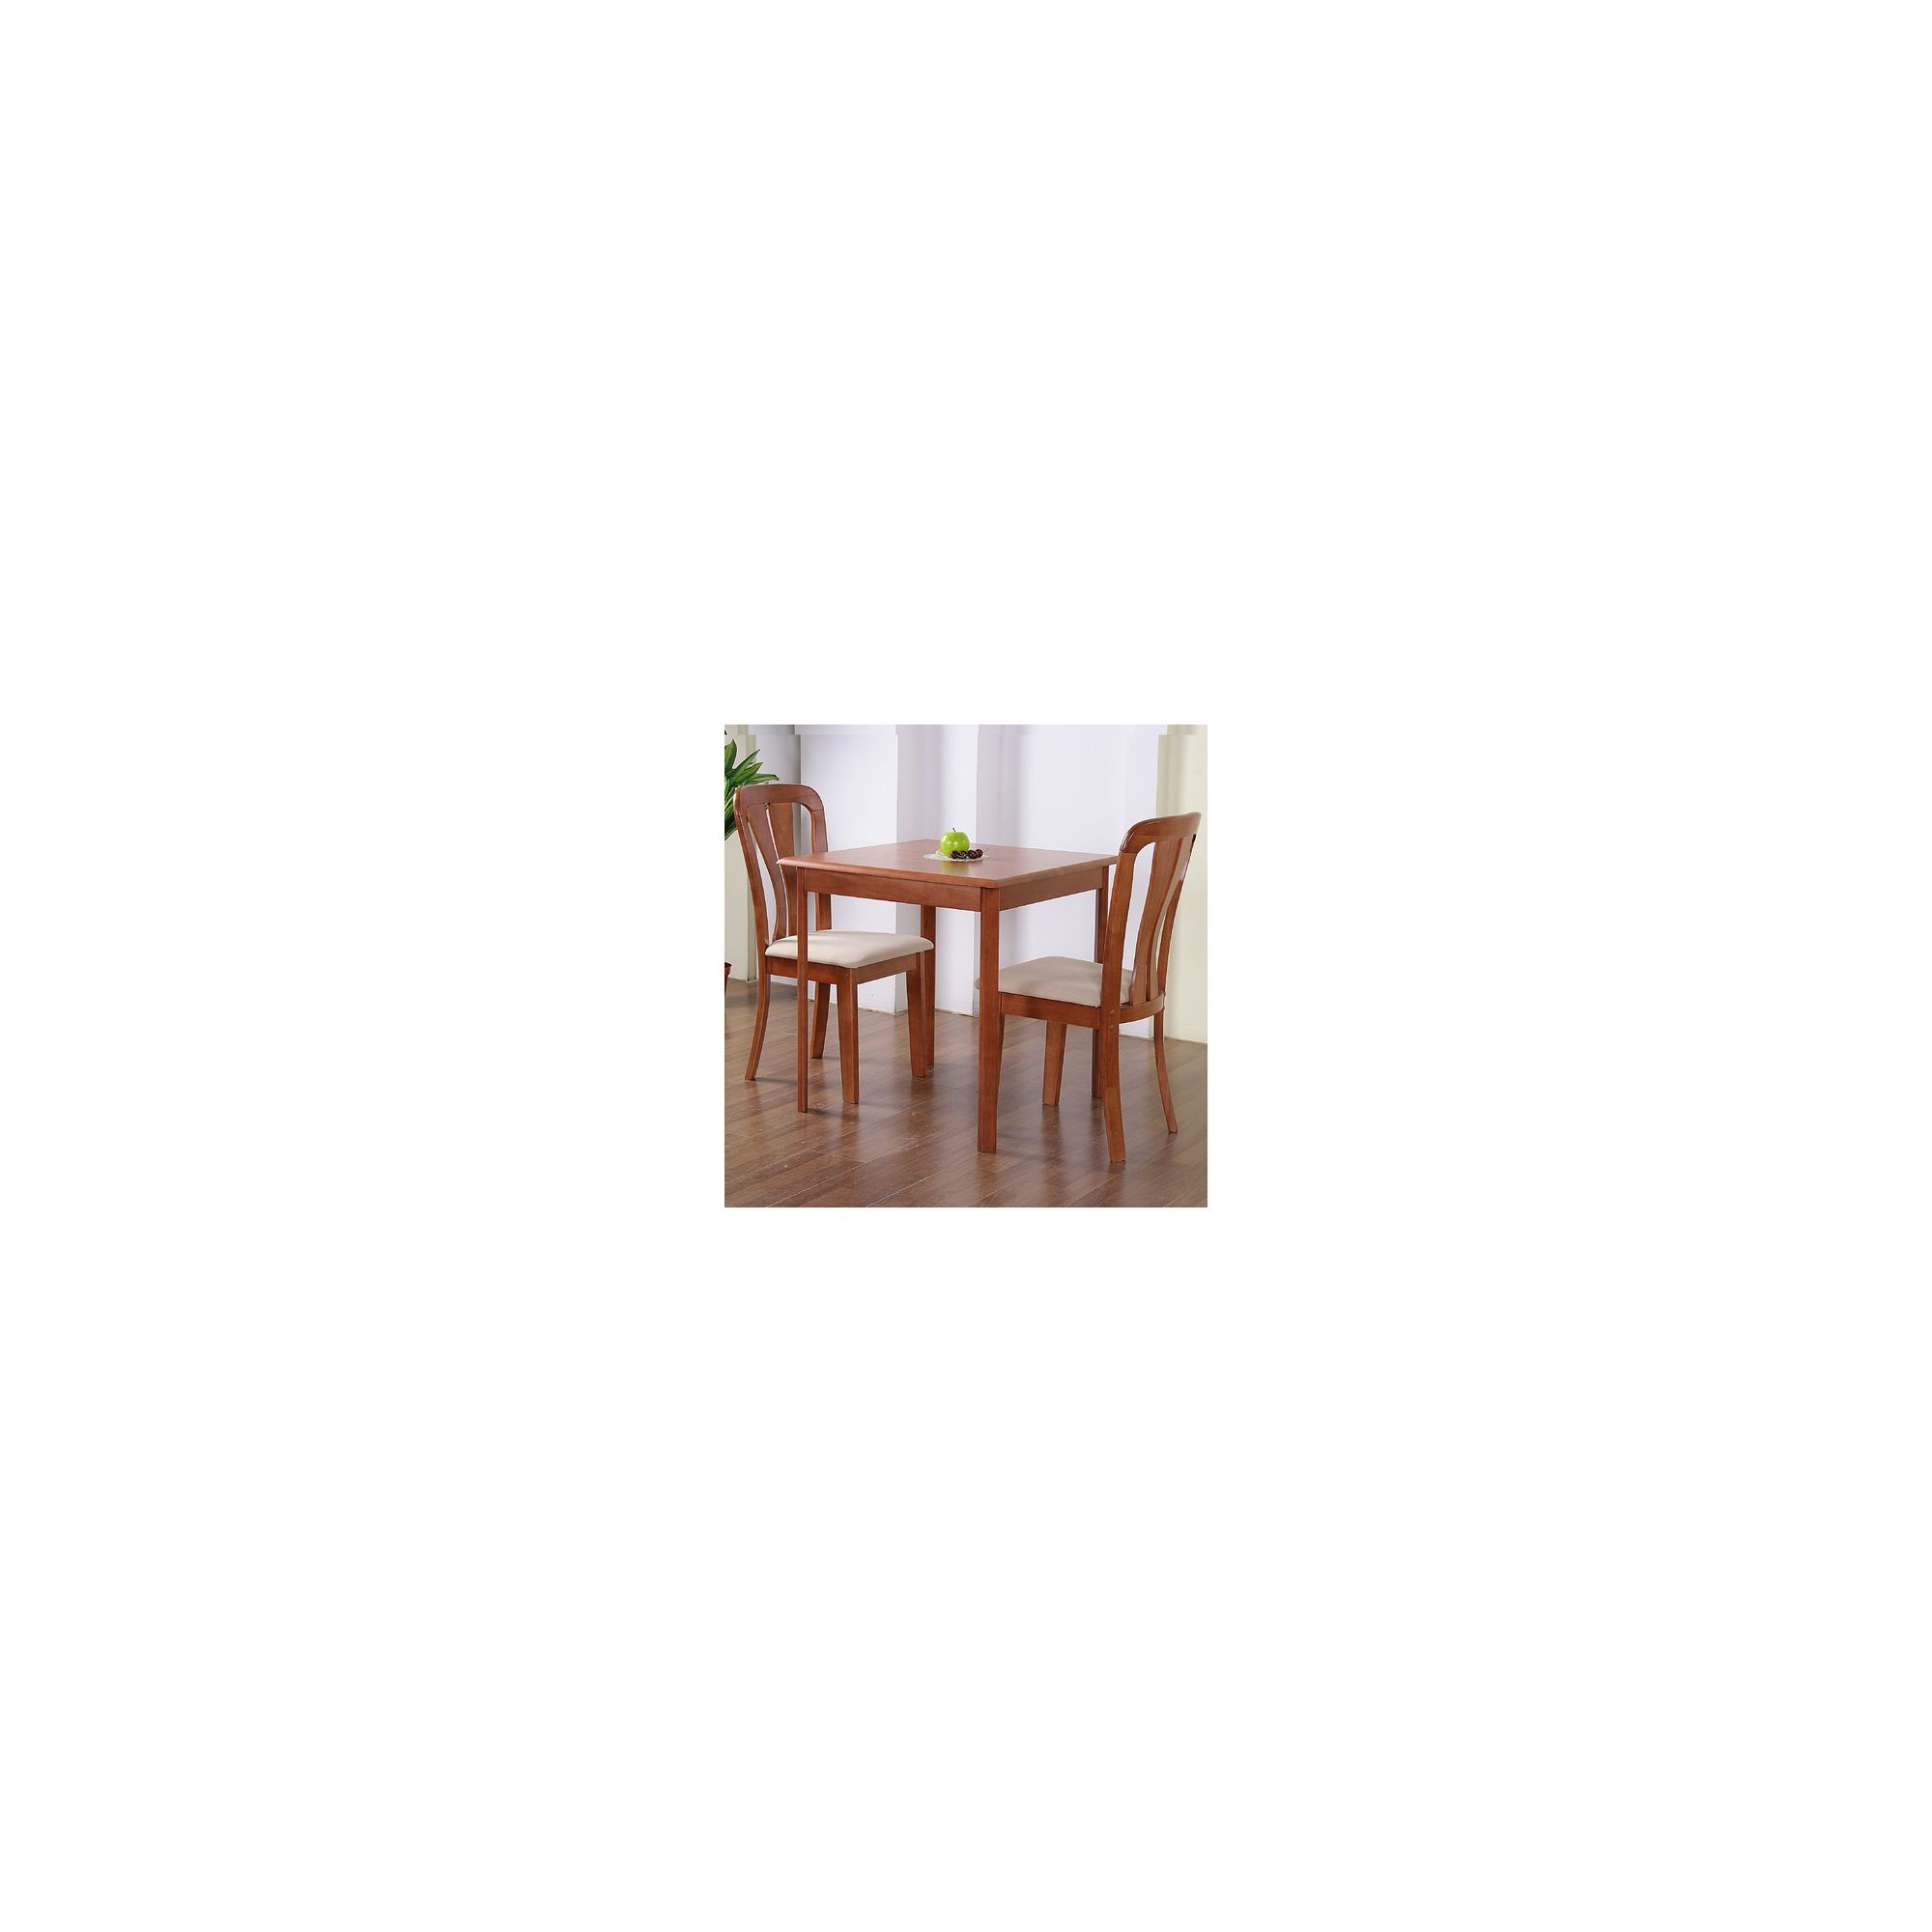 G&P Furniture Windsor House 3-Piece Derby Square Dining Set with Slatted Back Chair - Cherry at Tesco Direct